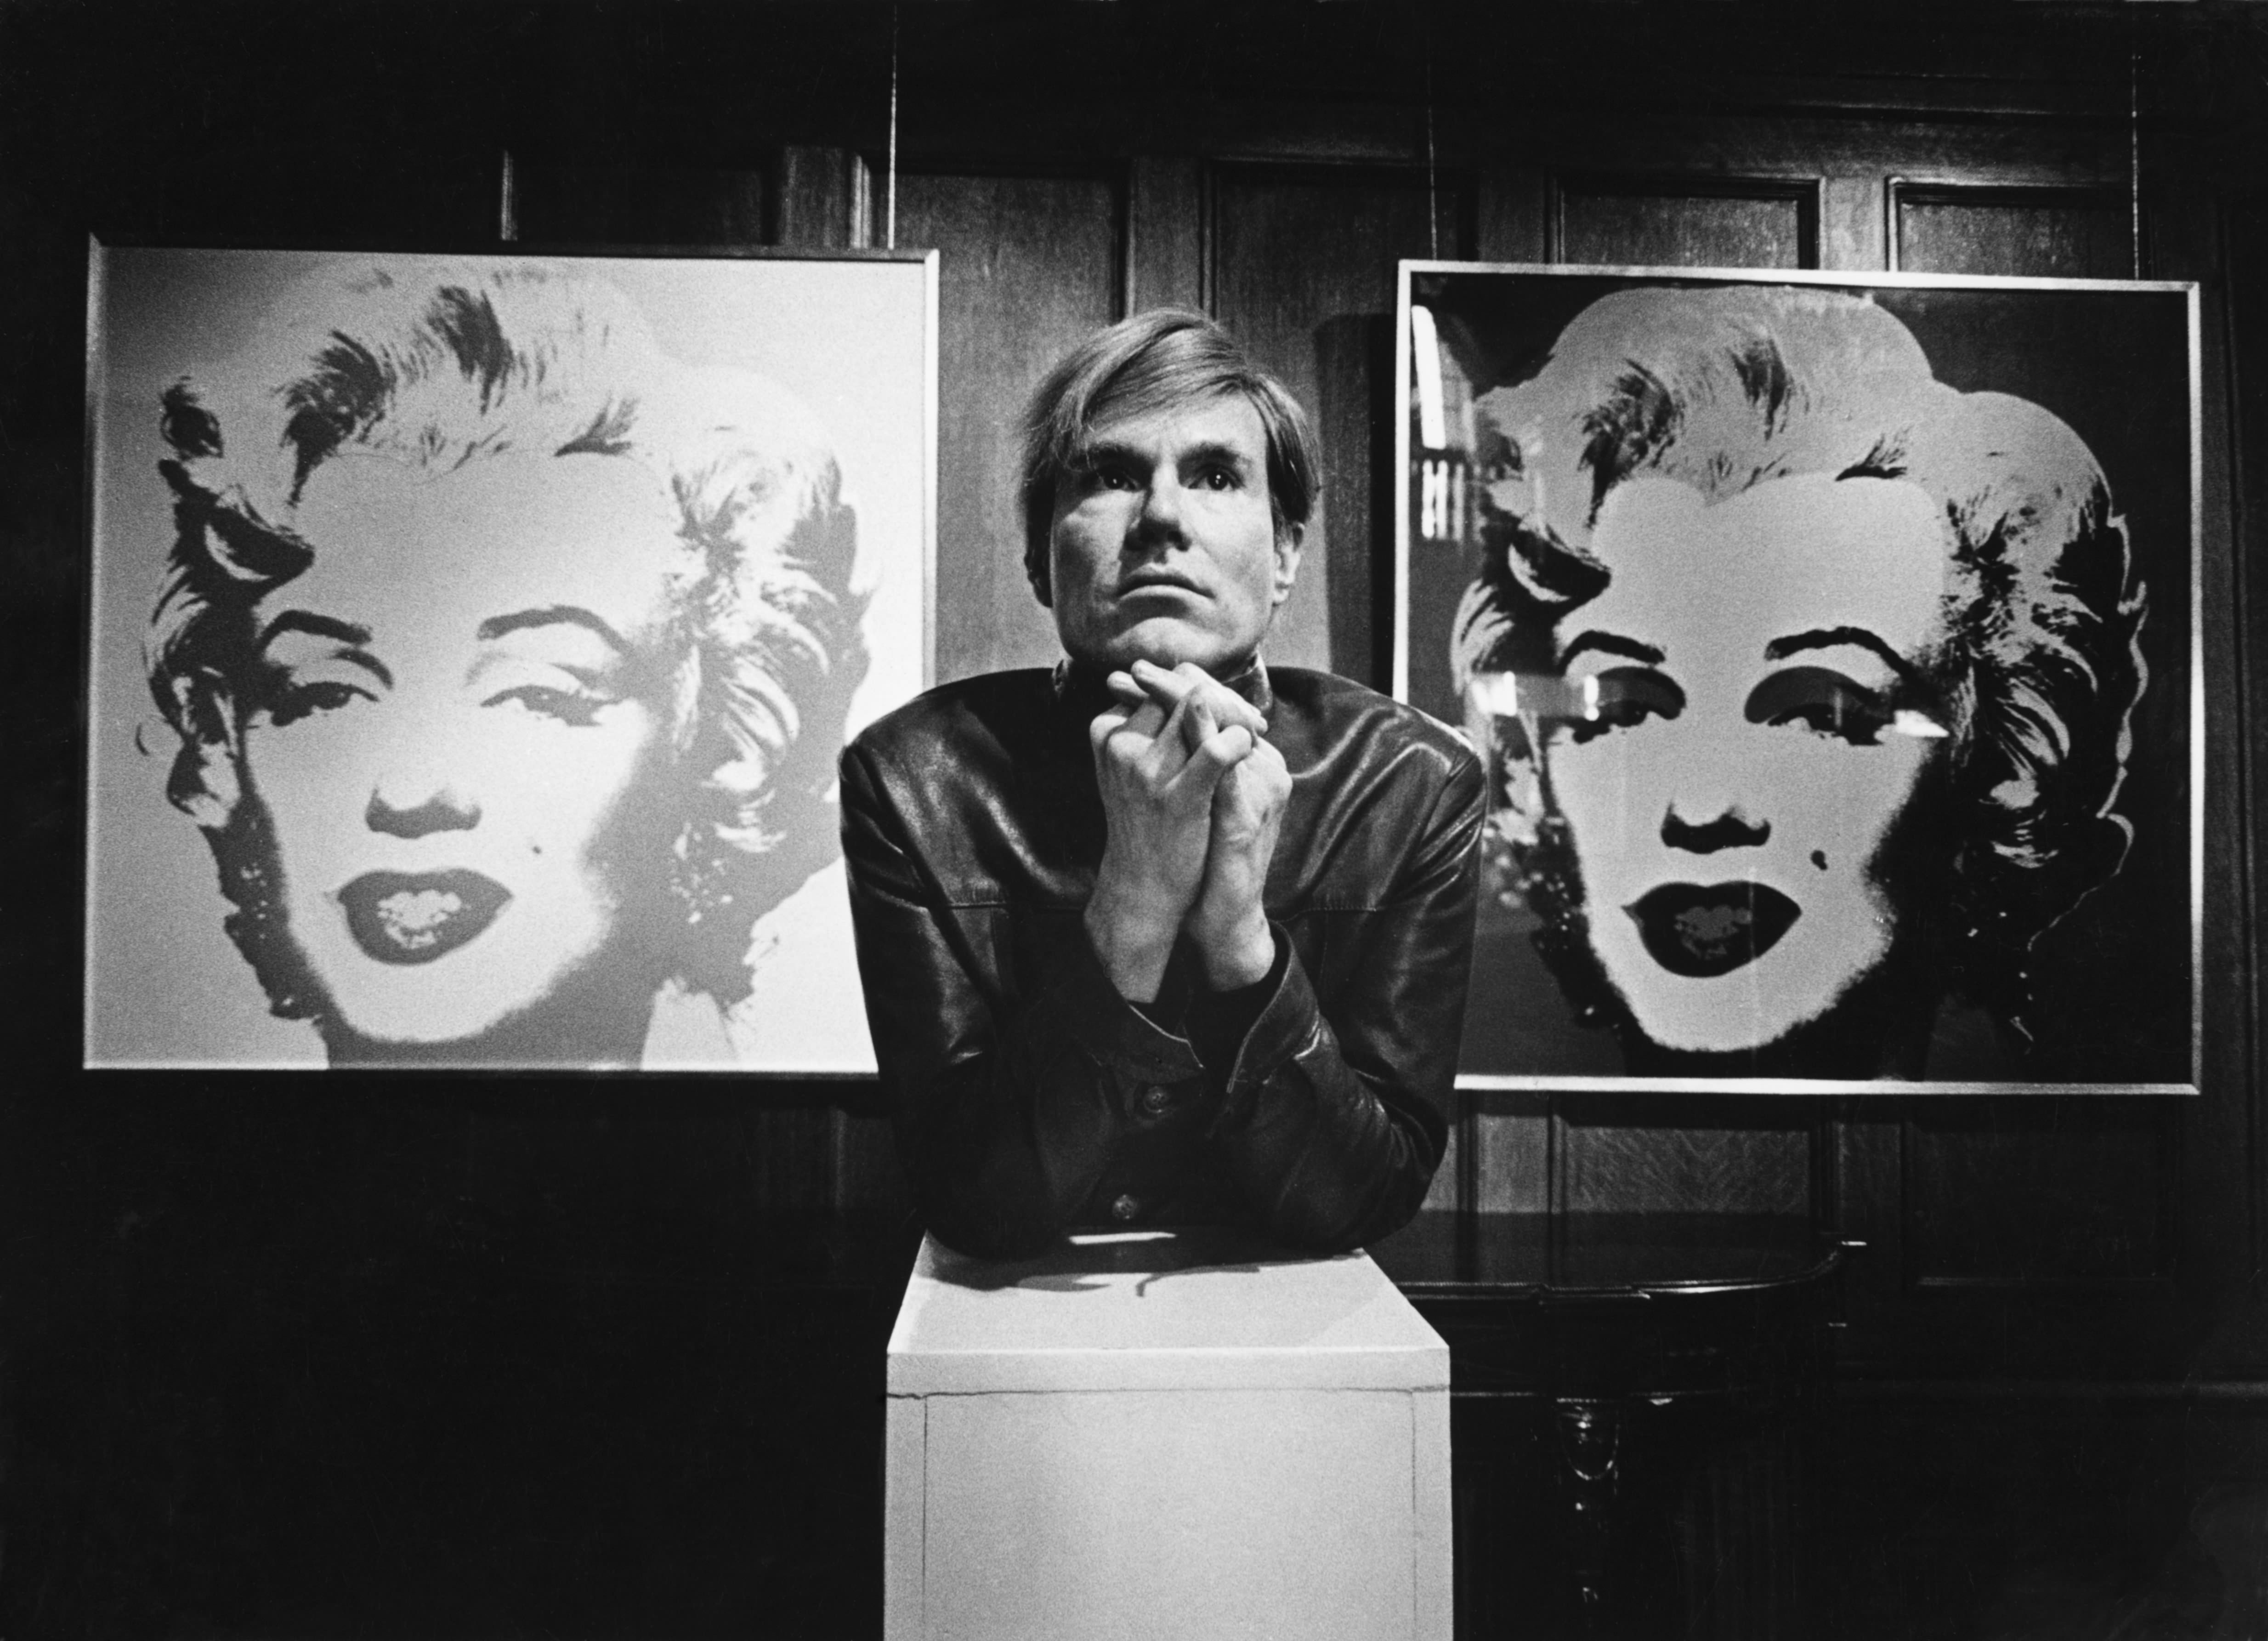 Andy Warhol next to the image and screenprint of the 20 Marilyns painting